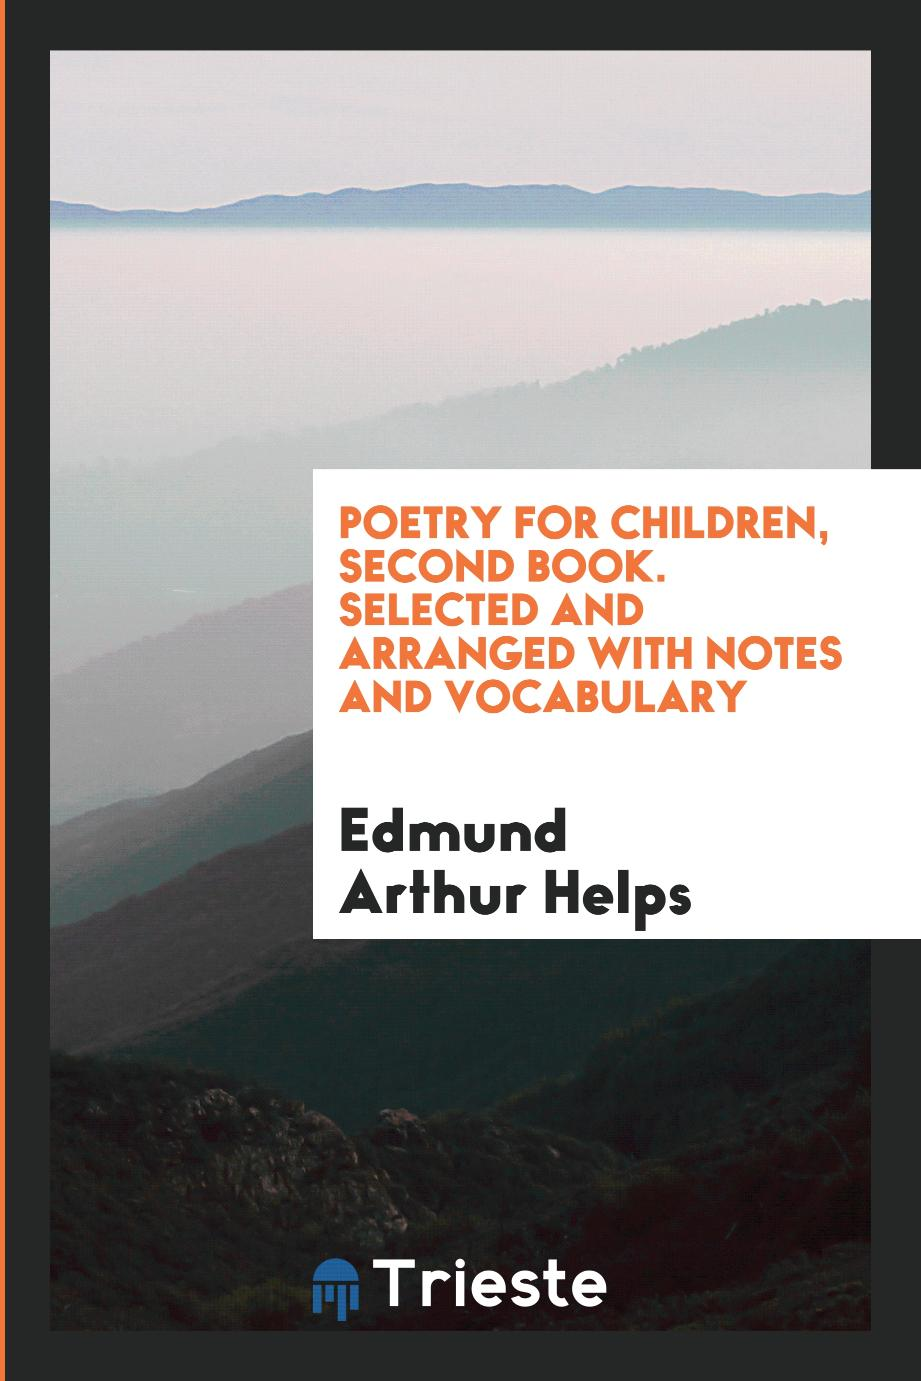 Poetry for Children, Second Book. Selected and Arranged with Notes and Vocabulary